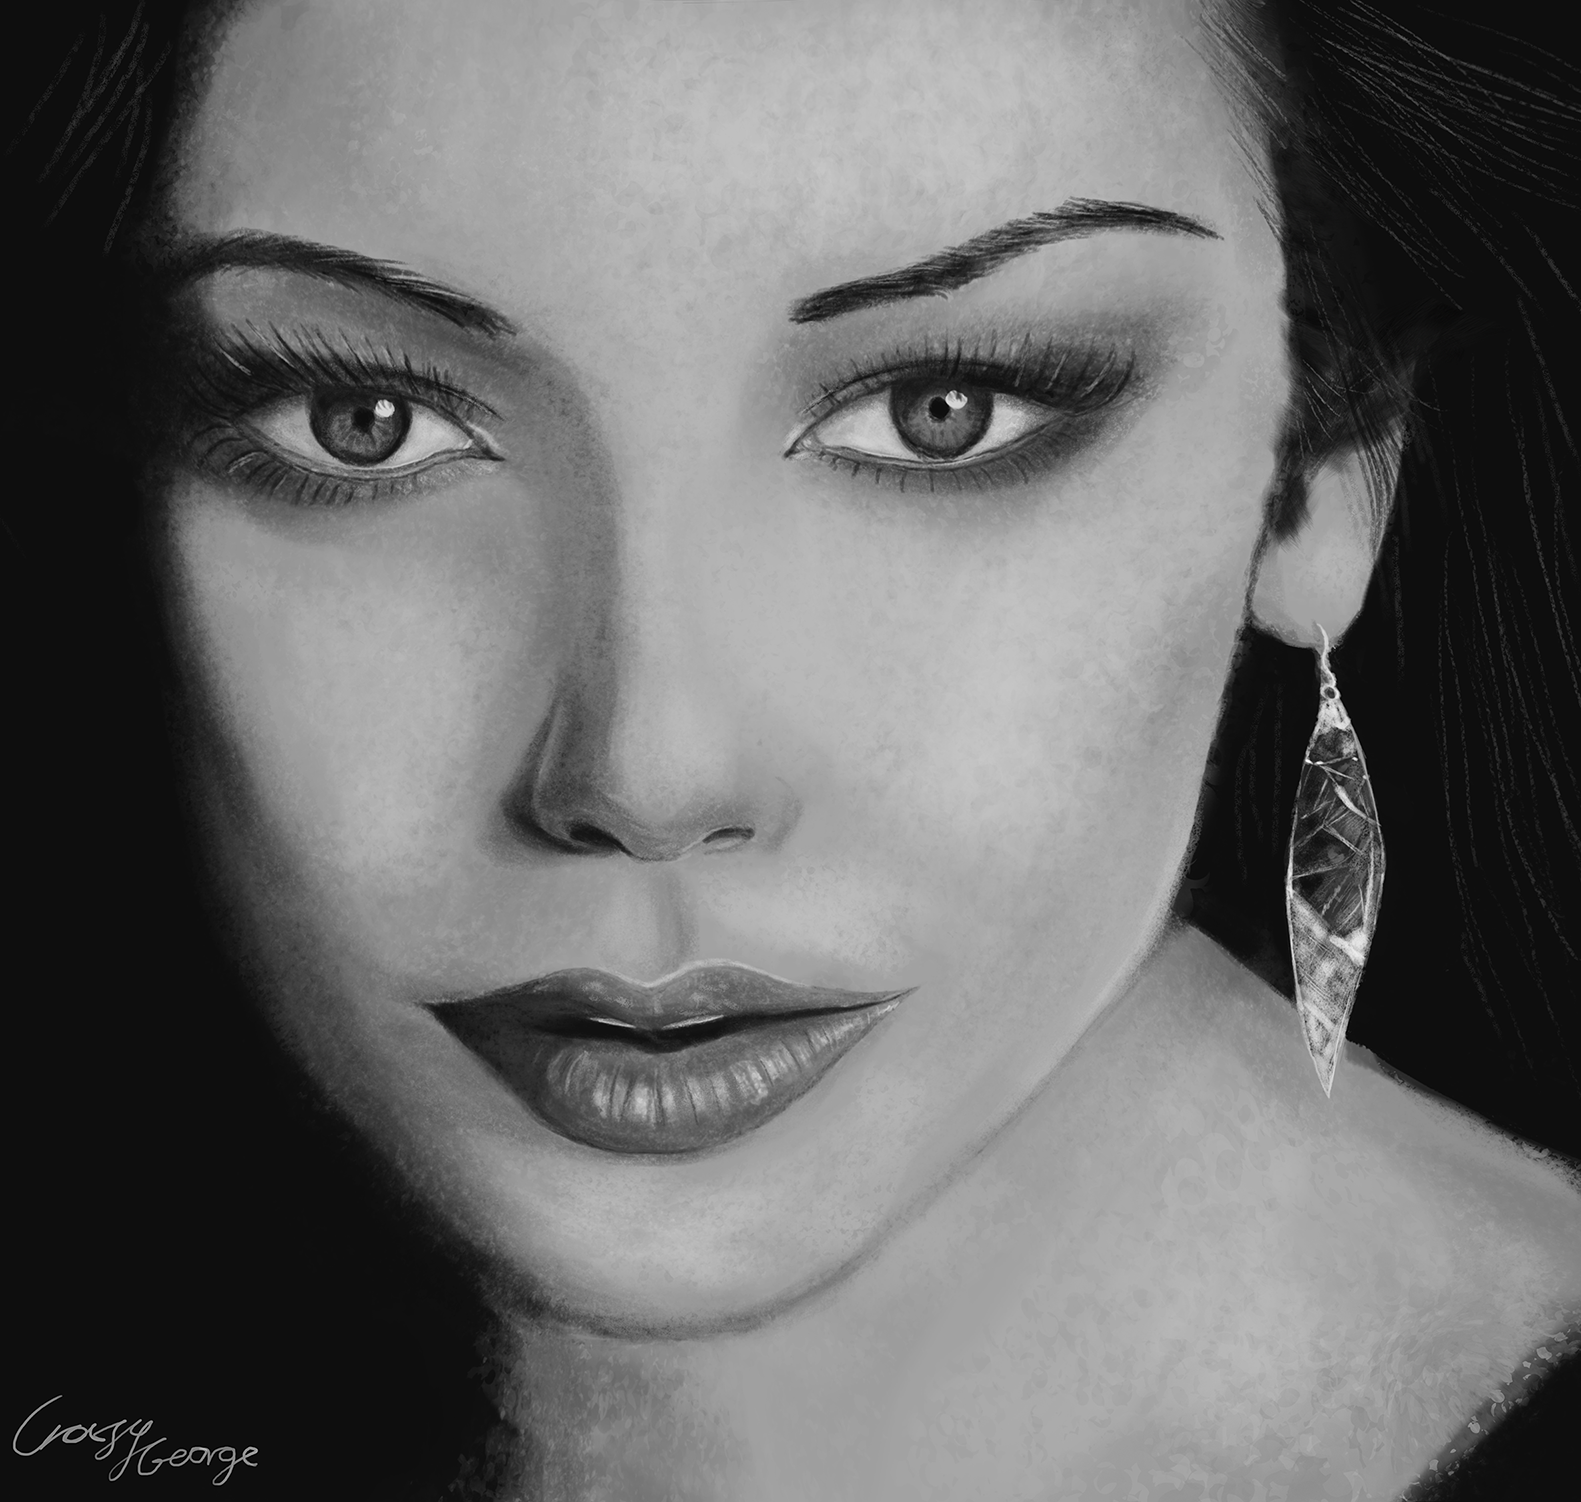 Exercise 02 - Drawing a Female Face